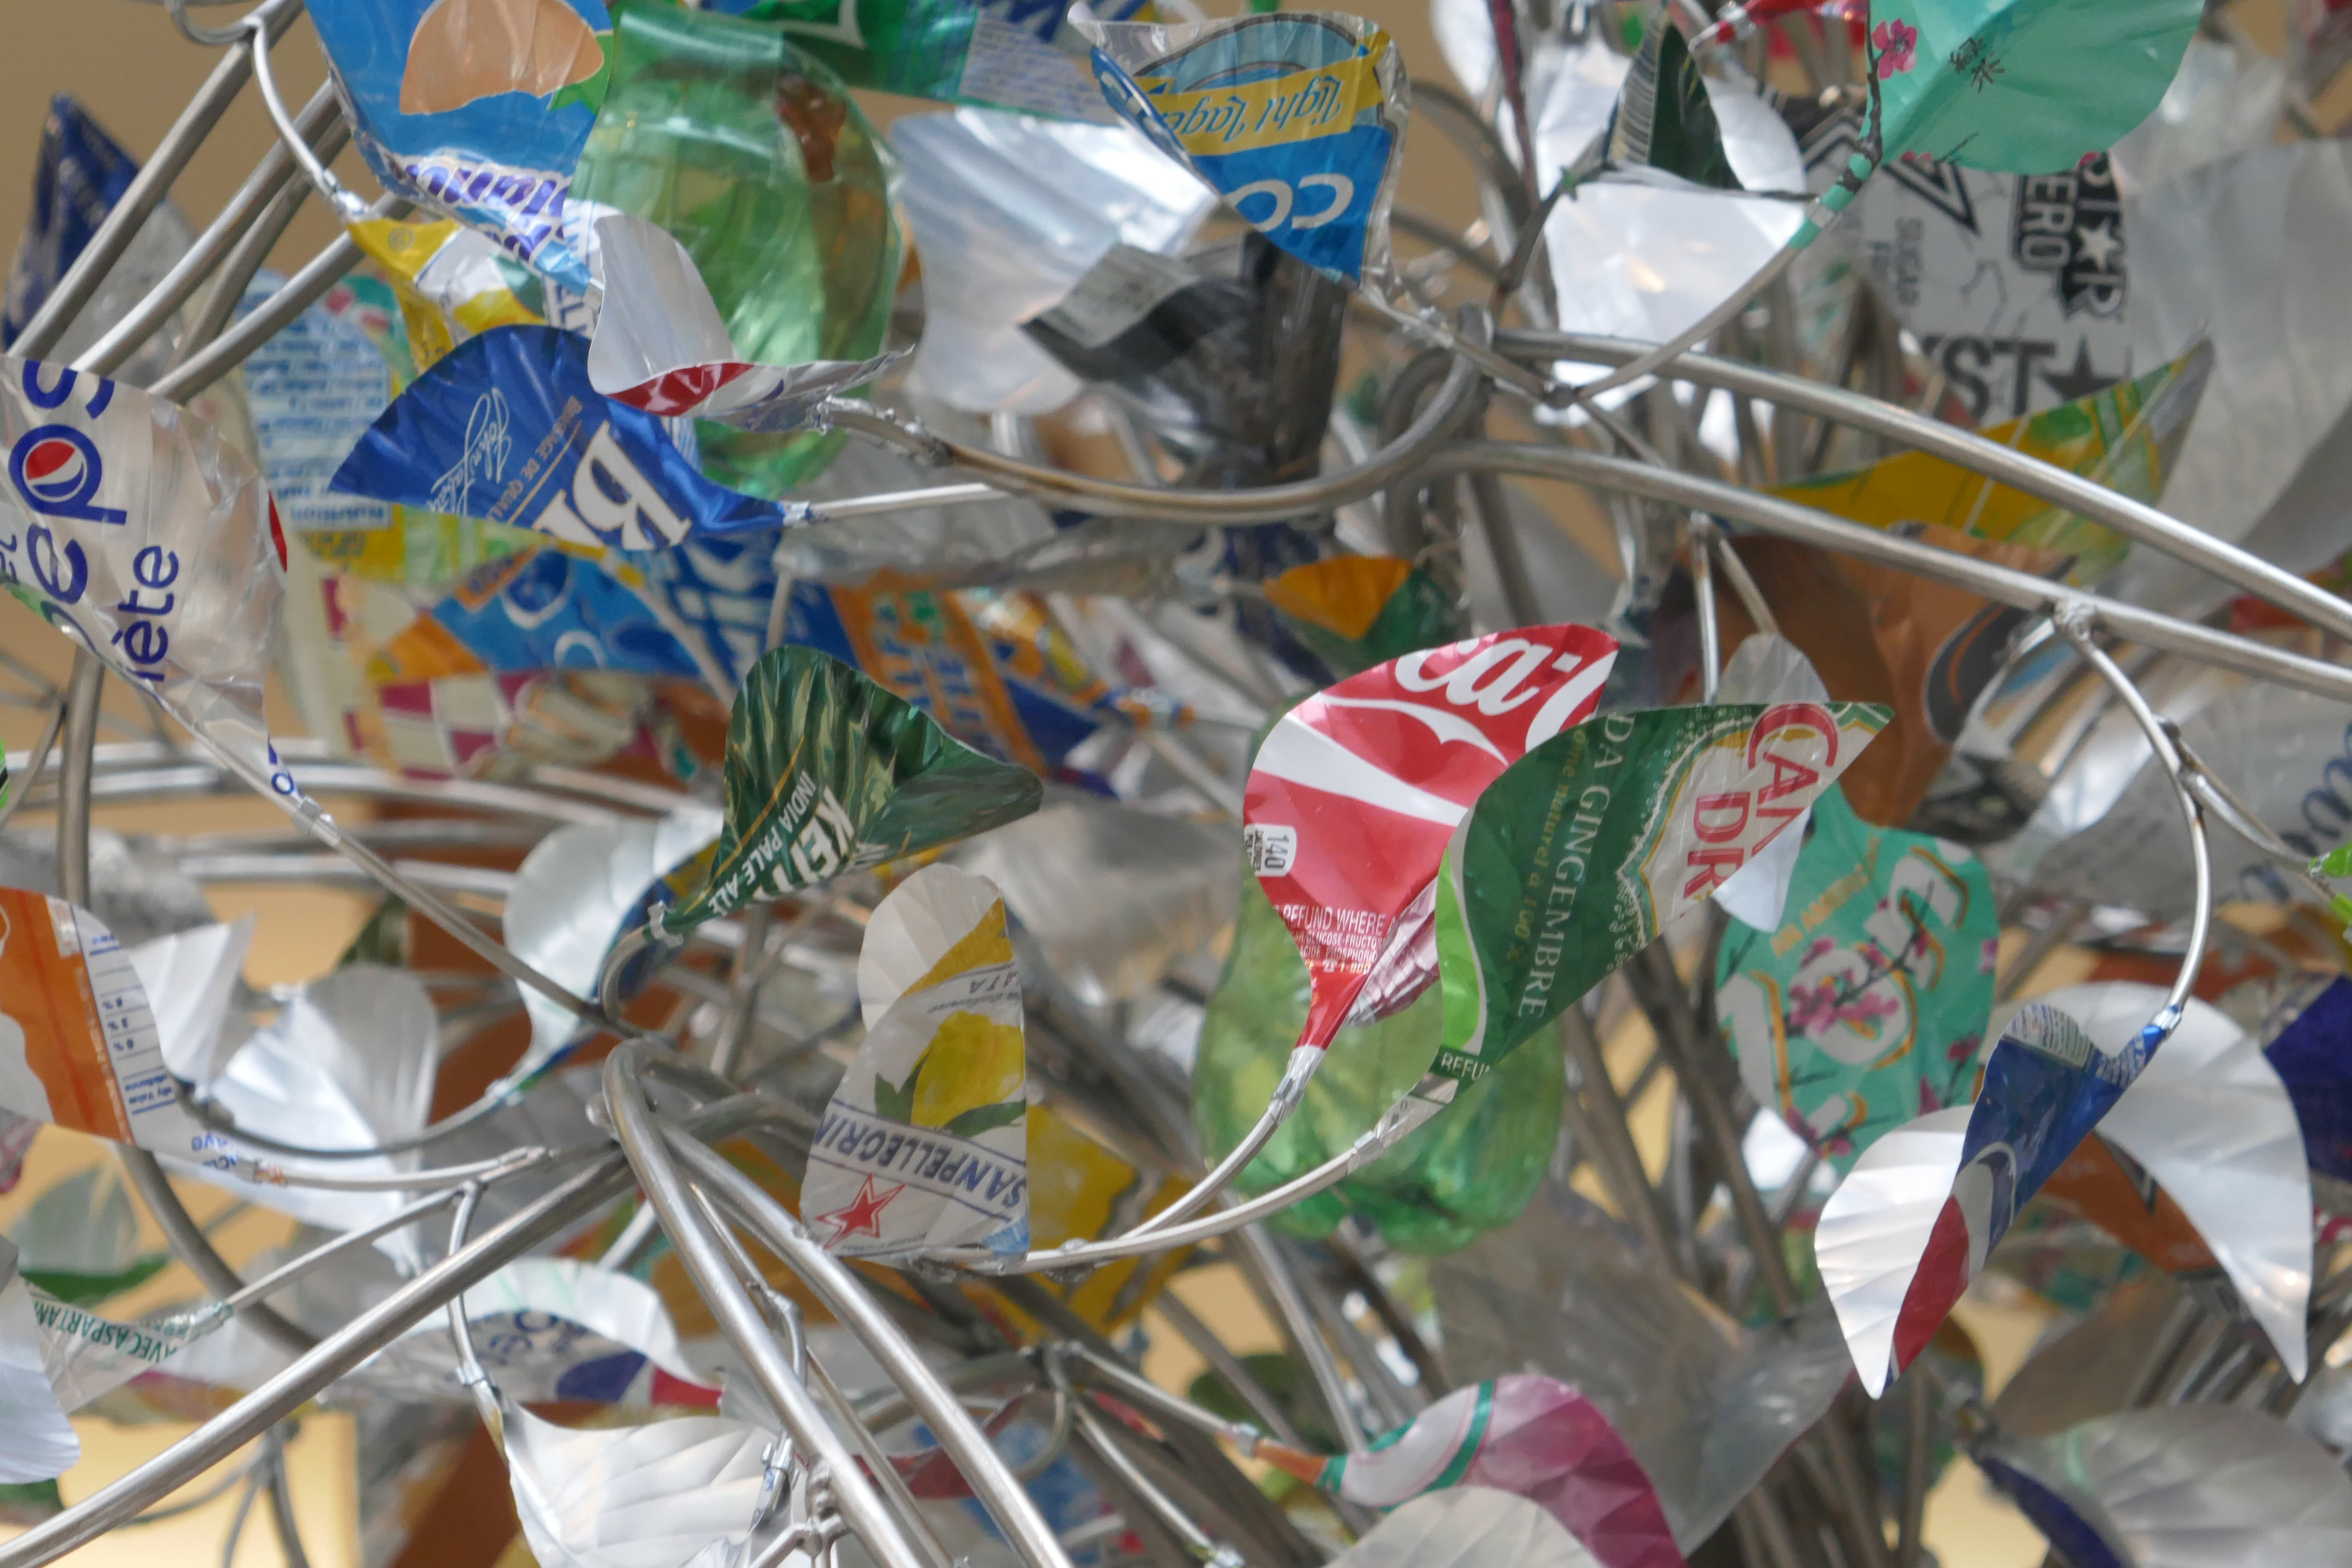 Local artists craft one-of-a-kind piece using recycled containers.